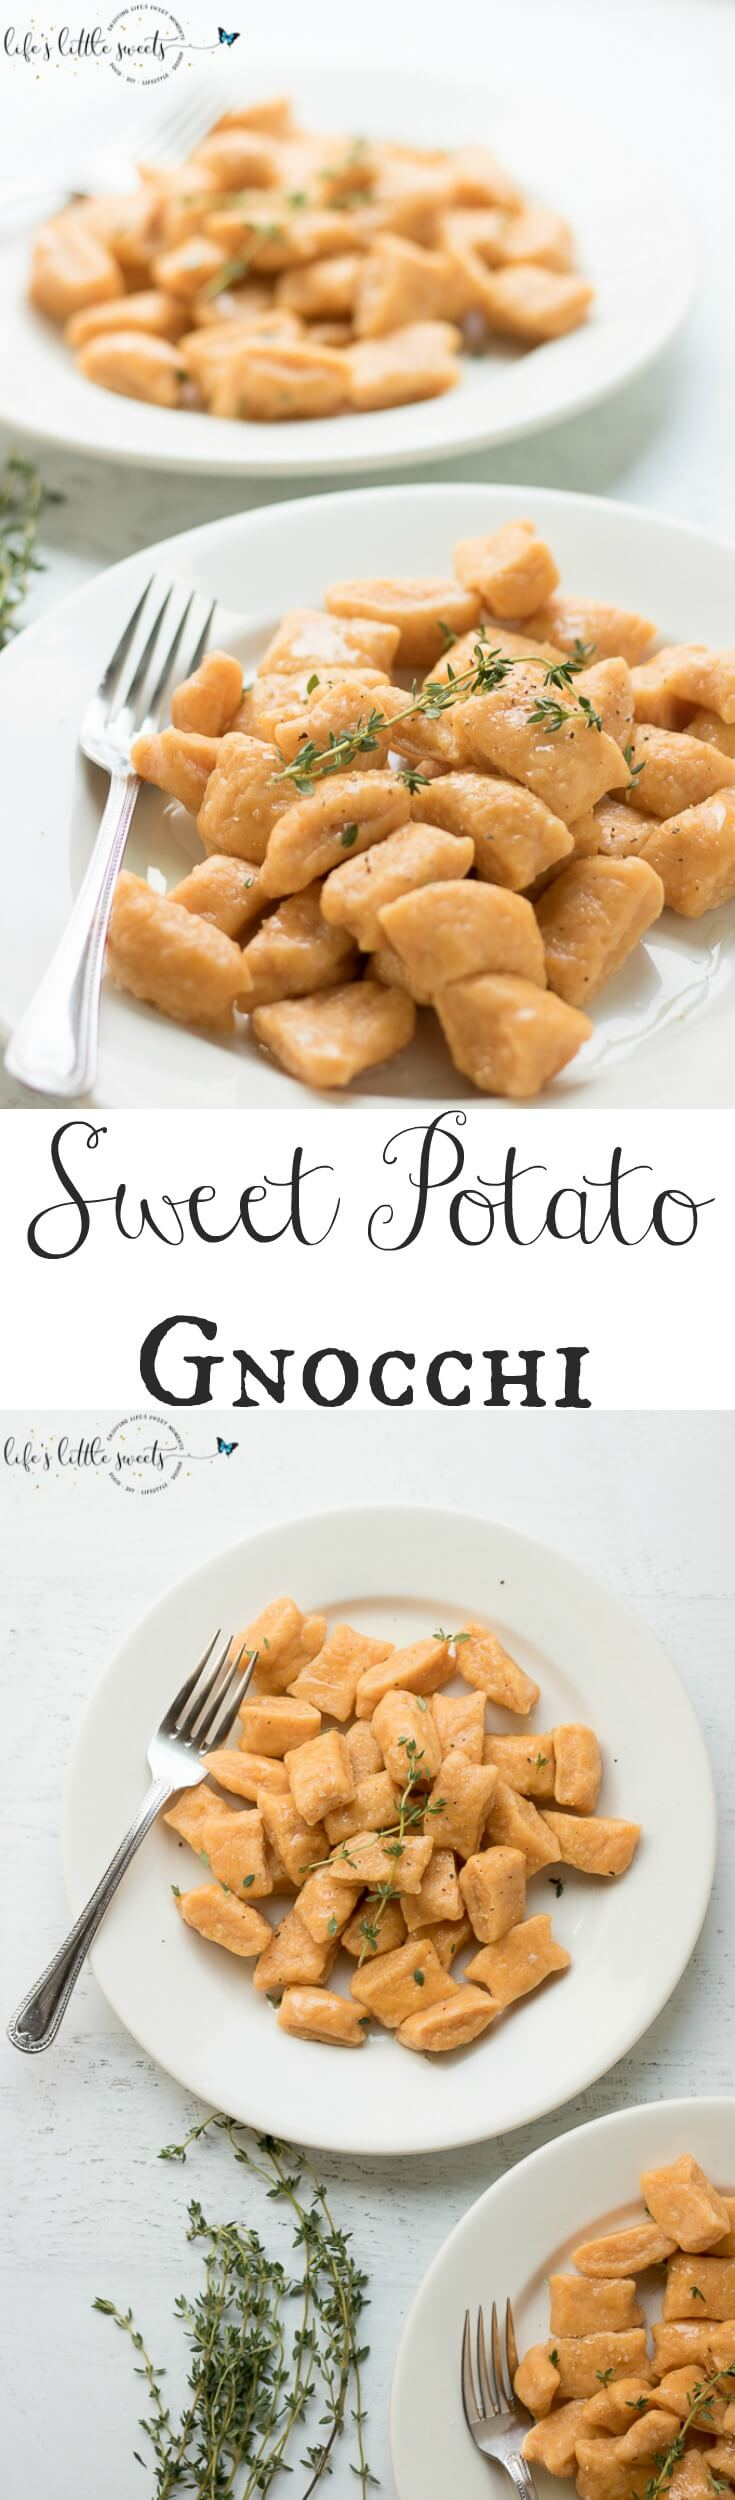 This Sweet Potato Gnocchi is surprisingly easy to put together. There are only 3-4 required ingredients and you can add some fresh herbs, like thyme or parsley for serving. Try this simple, homemade dish for your next meal! (dairy-free, vegetarian) #sweetpotatognocchi #gnocchi #sweetpotatoes #sweetpotato #Italianfood #recipe #homemade #thyme #egg #flour